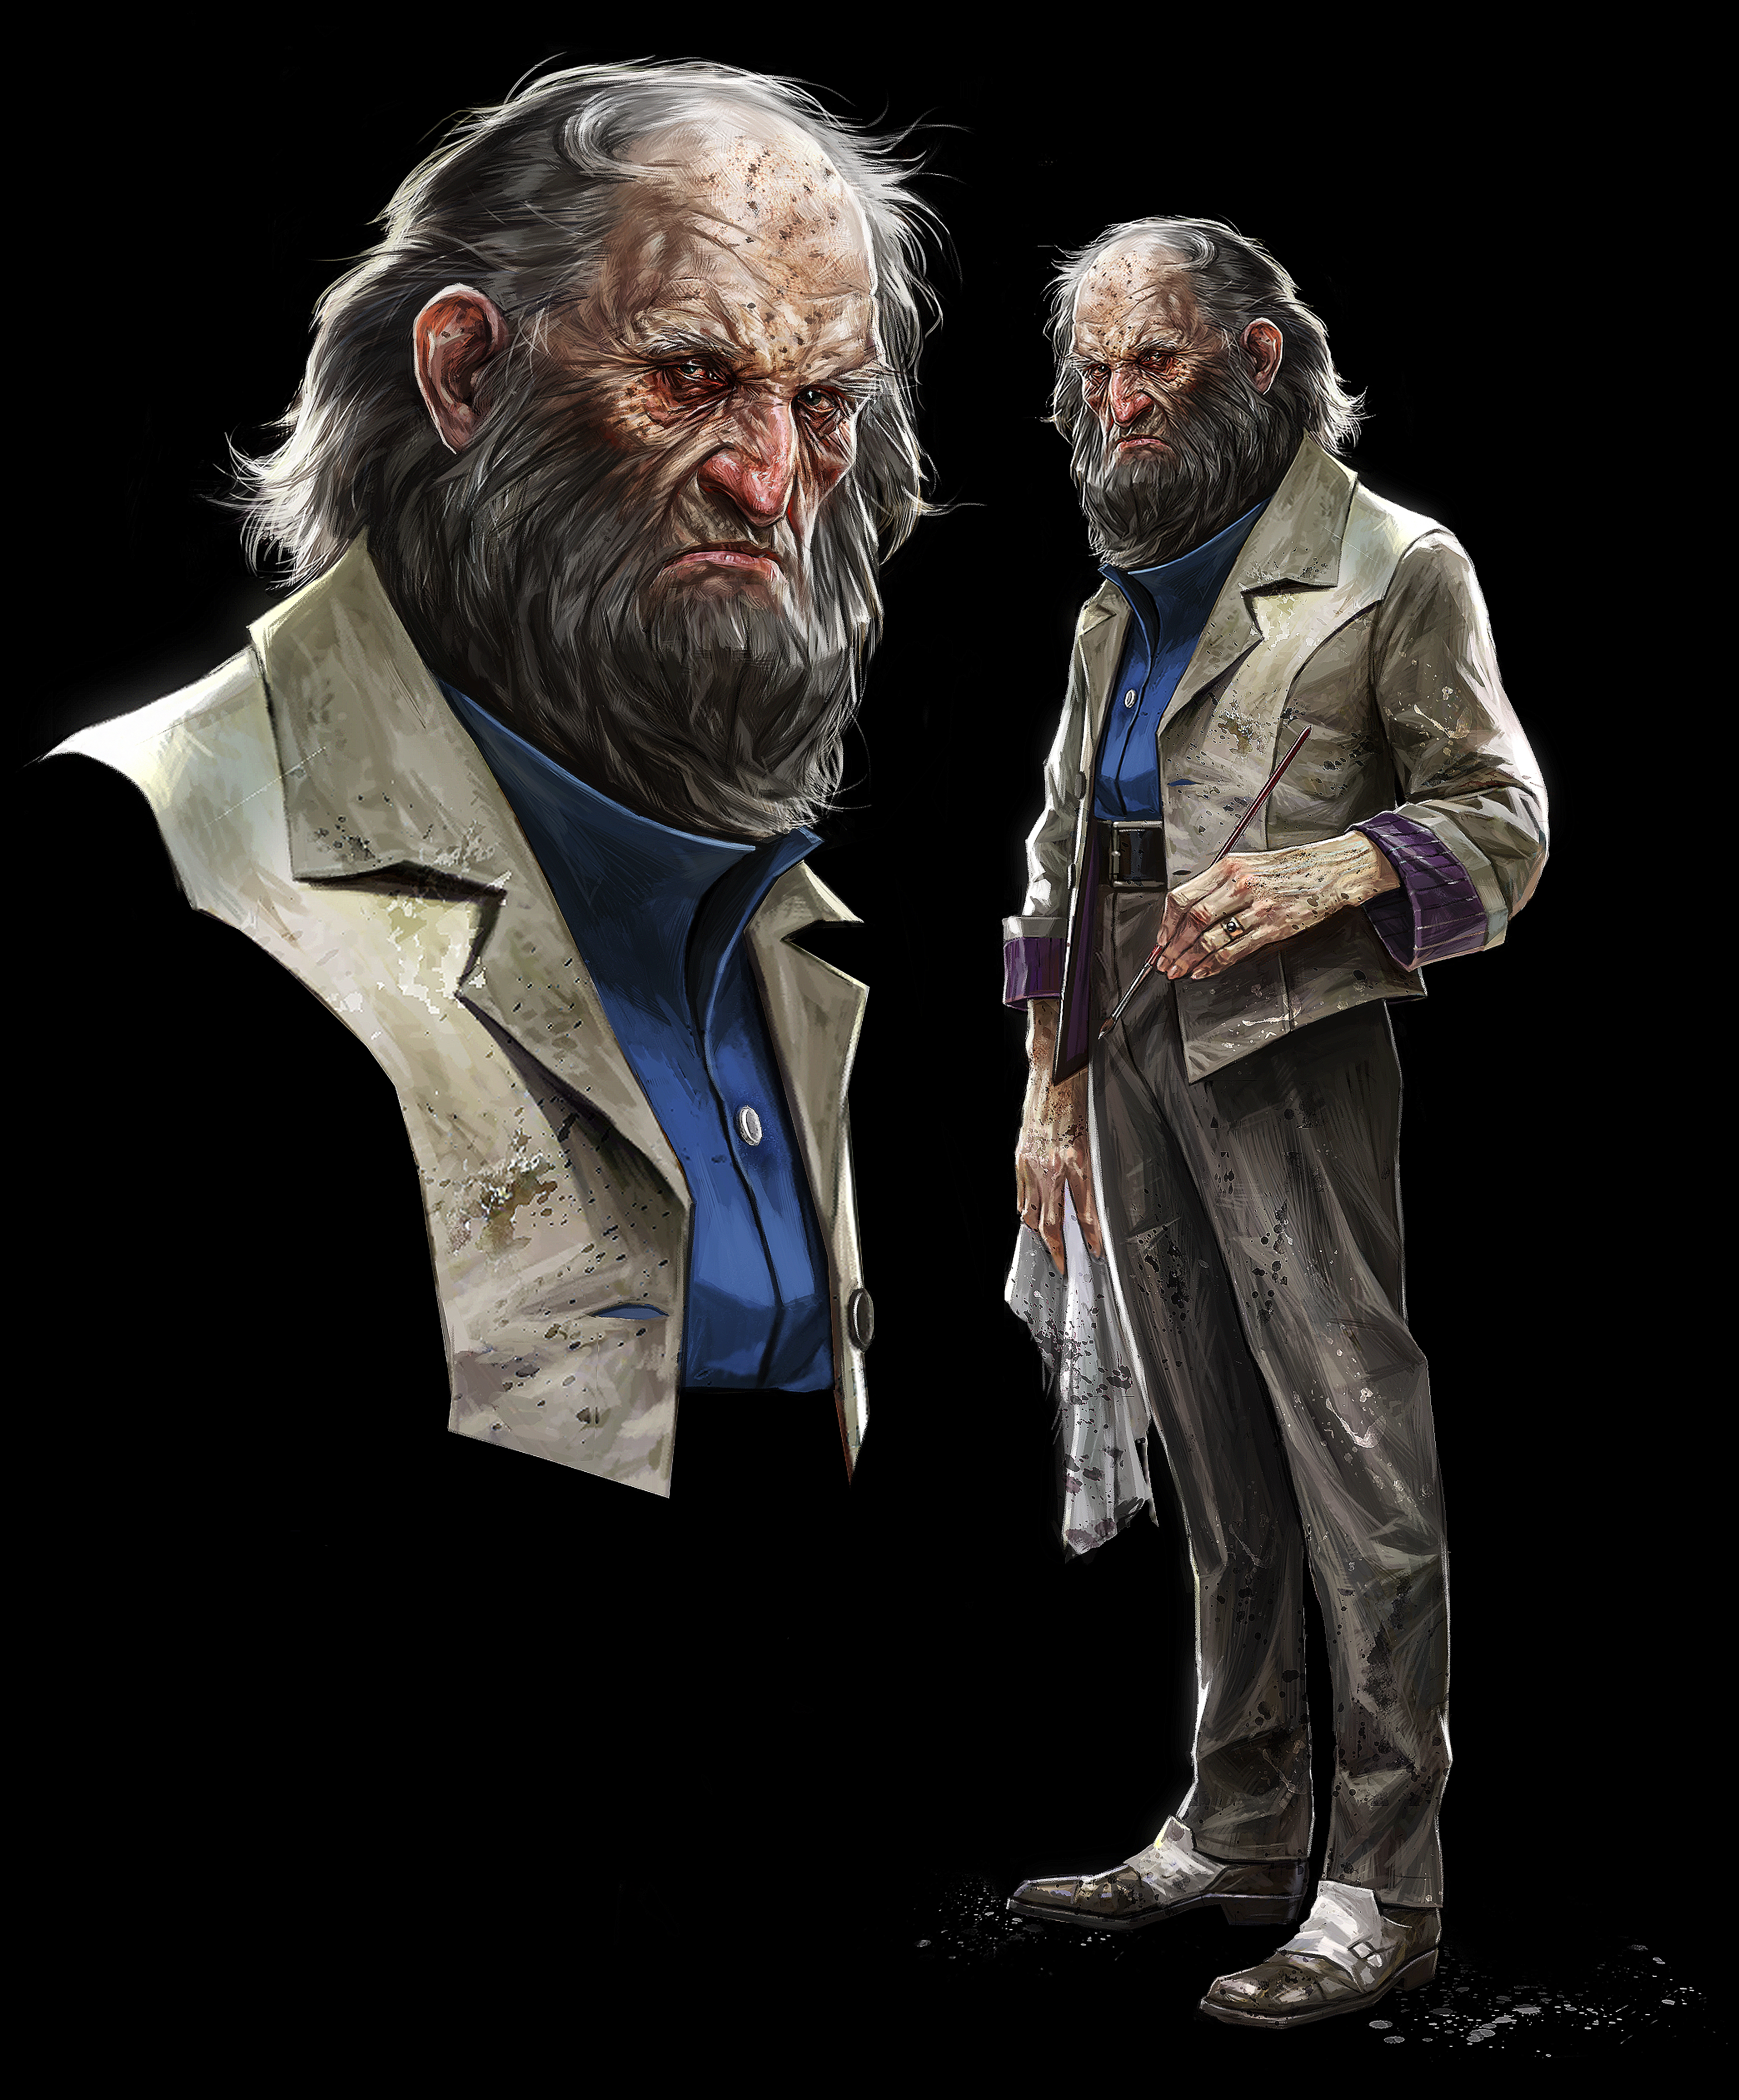 Character Design Jobs Australia : The concept art behind dishonored s menacing characters